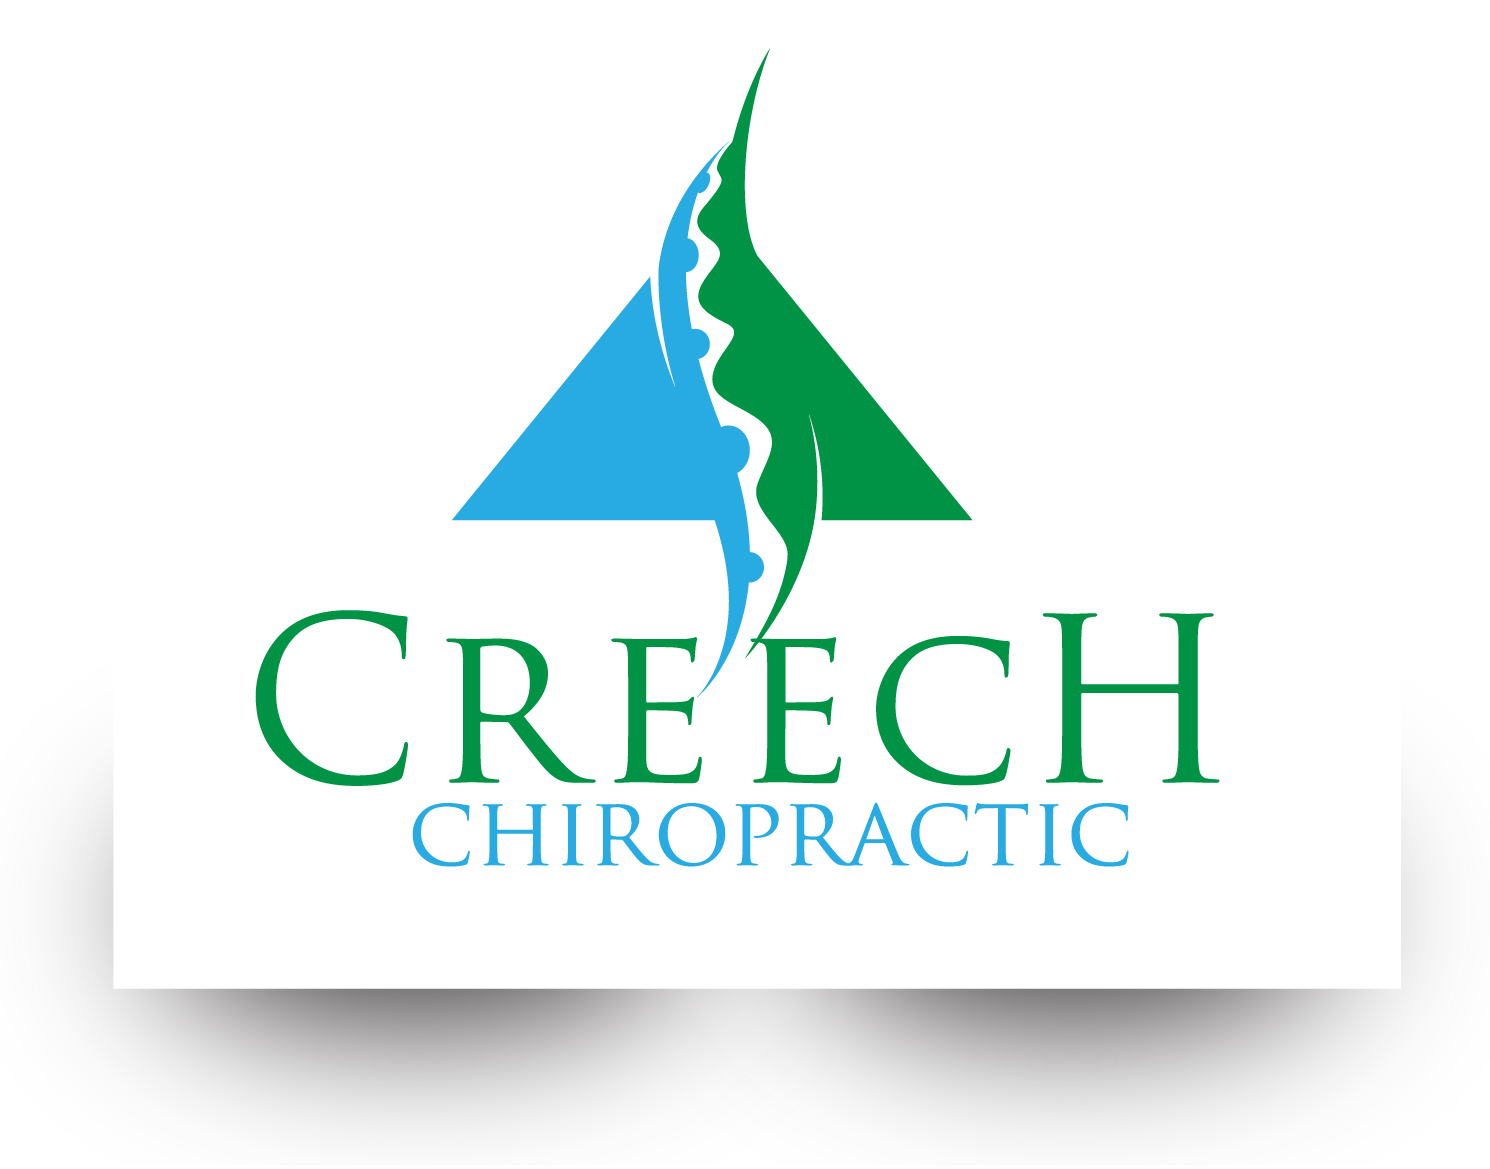 Logo Design by demang - Entry No. 135 in the Logo Design Contest Imaginative Logo Design for Creech Chiropractic.